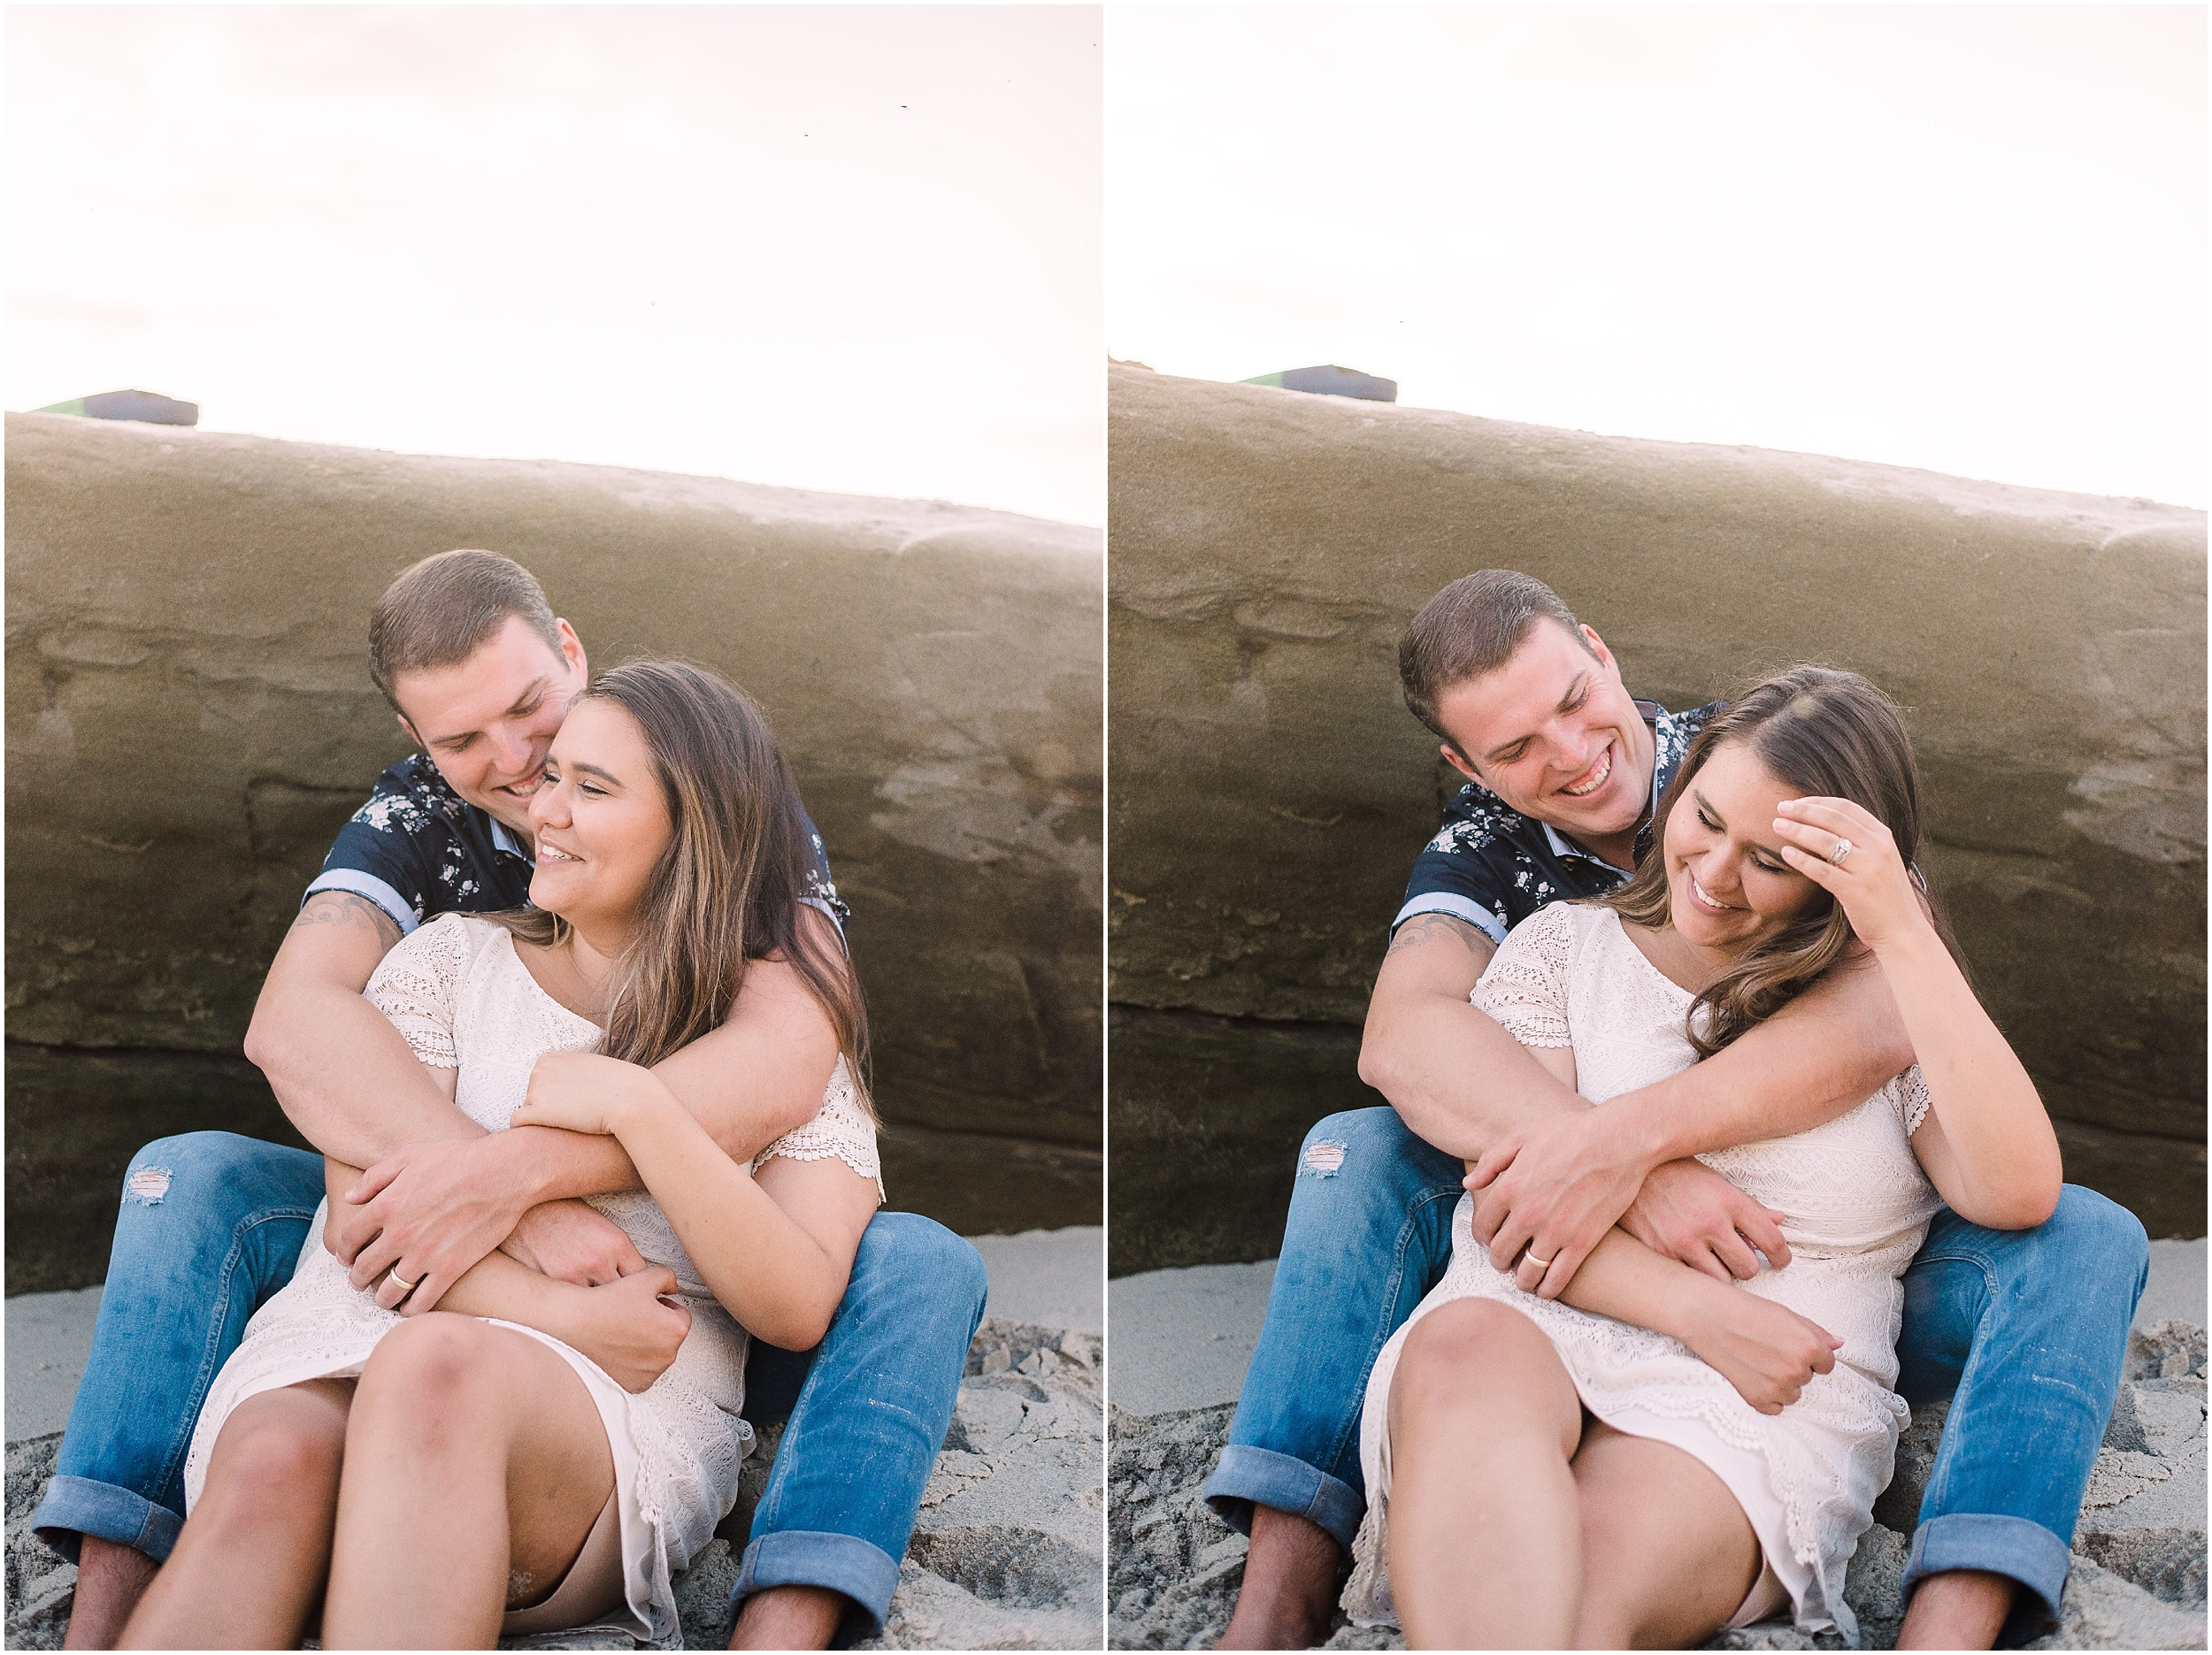 Valeria-Gonzalez-Photography-Wedding-and-Portrait-Photographer-Richmond-Virginia-Anniversary-Session-in-San Diego-California_0015.jpg